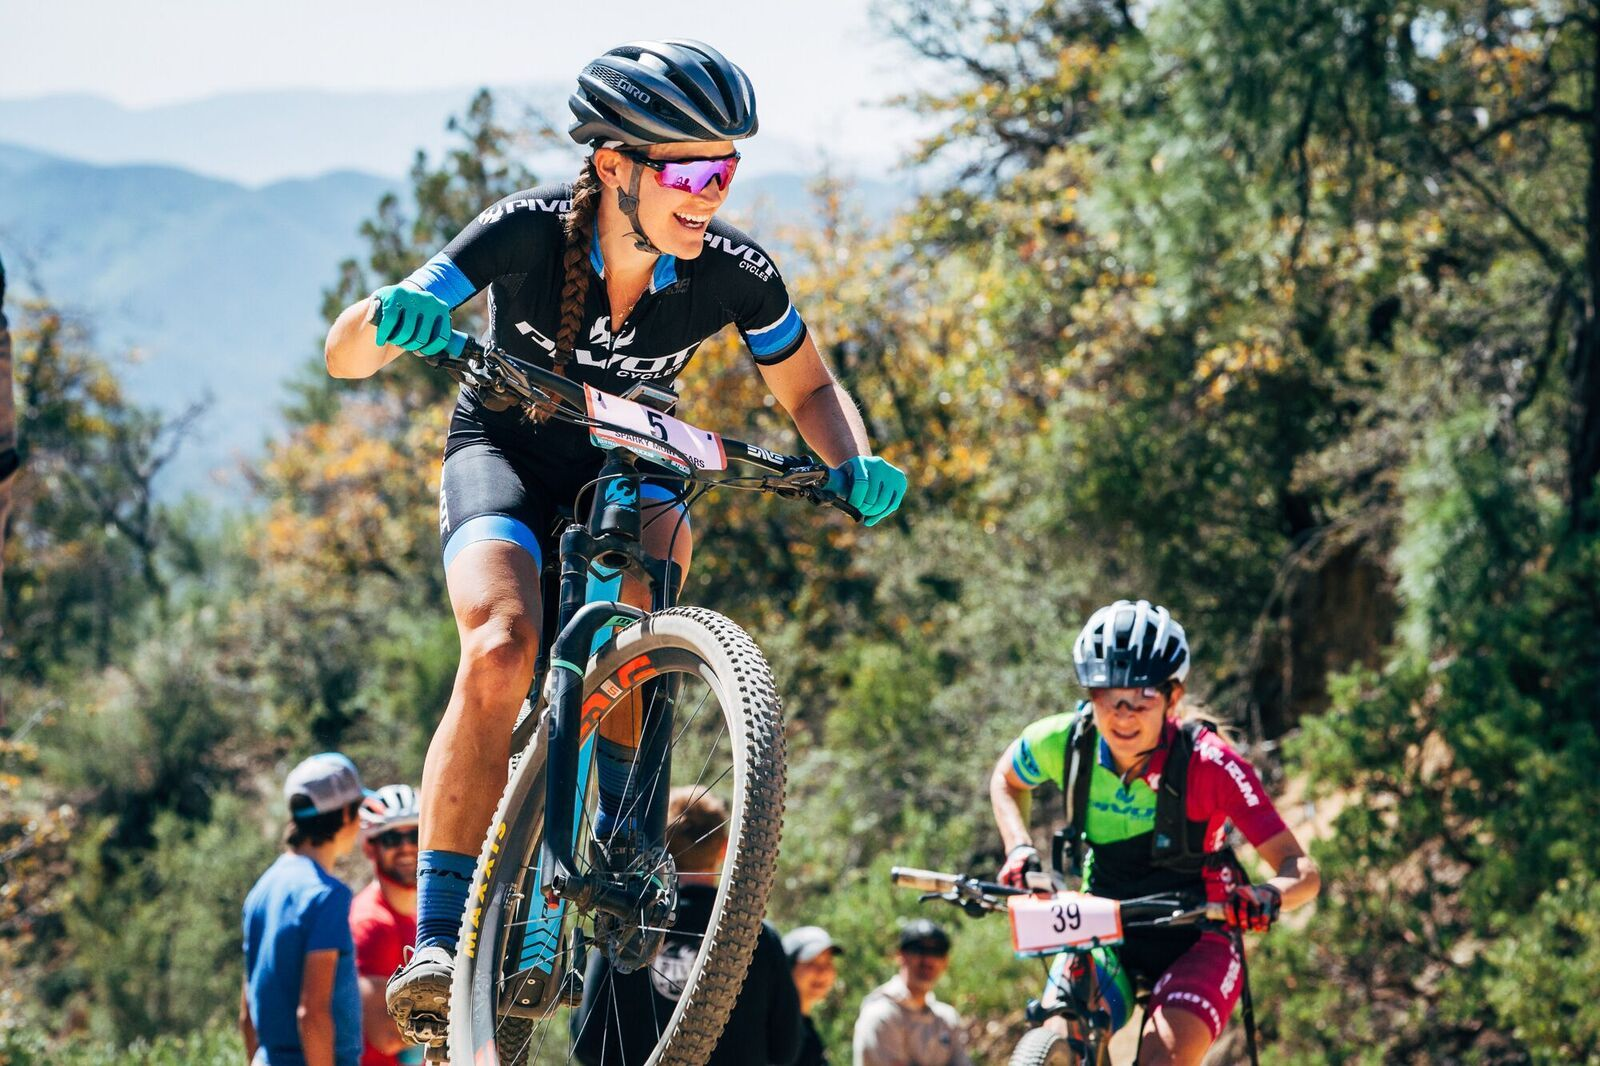 Mountain Bike Races 2019 Mountain Bike Races Near Me